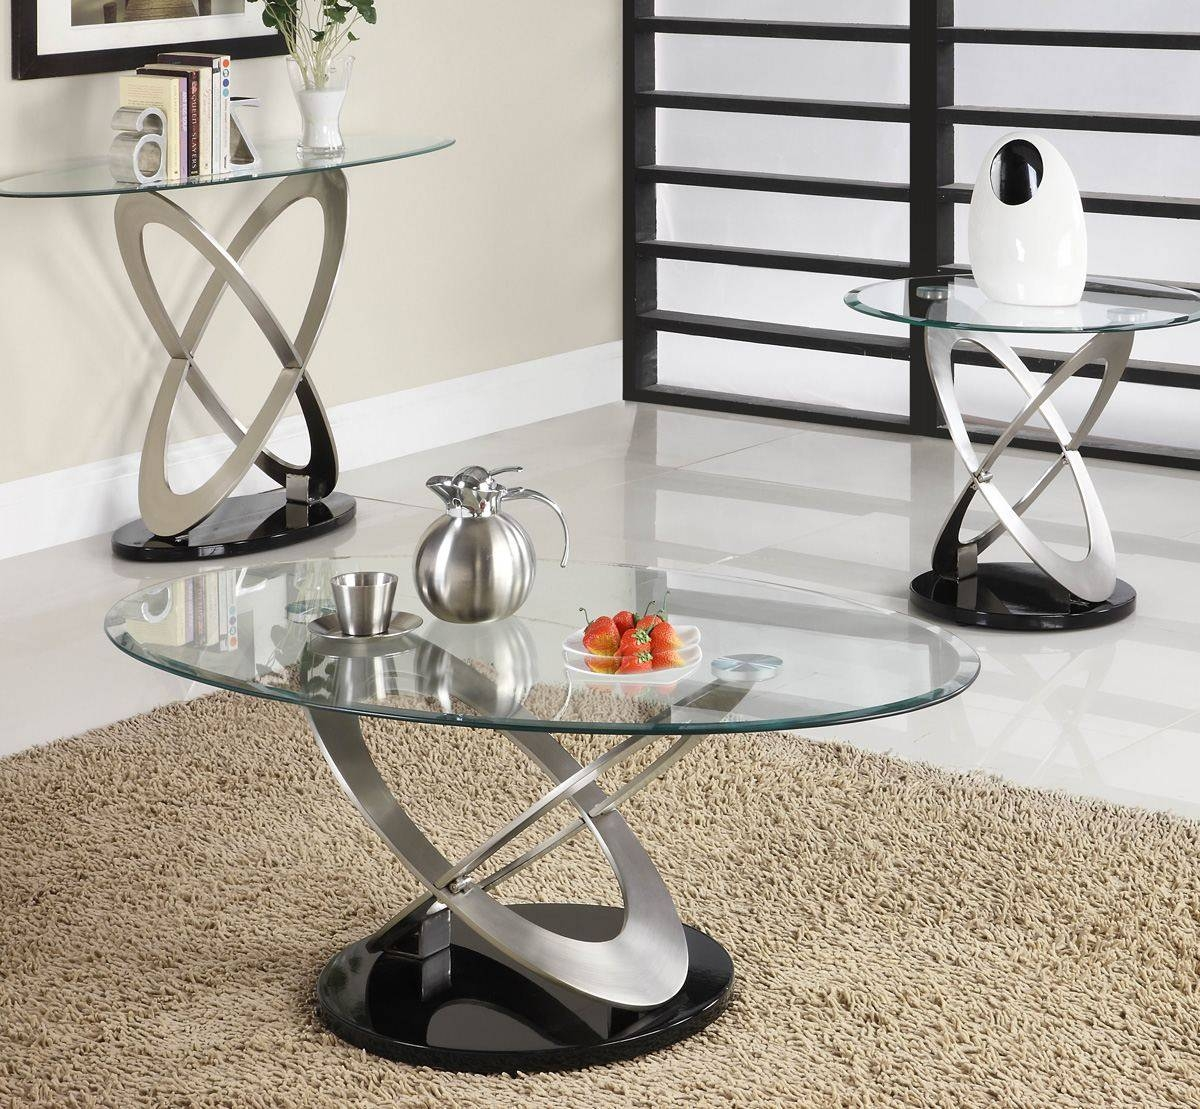 Homelegance Firth Oval Glass Sofa Table In Chrome & Black Metal throughout Sofa Table Chairs (Image 20 of 30)